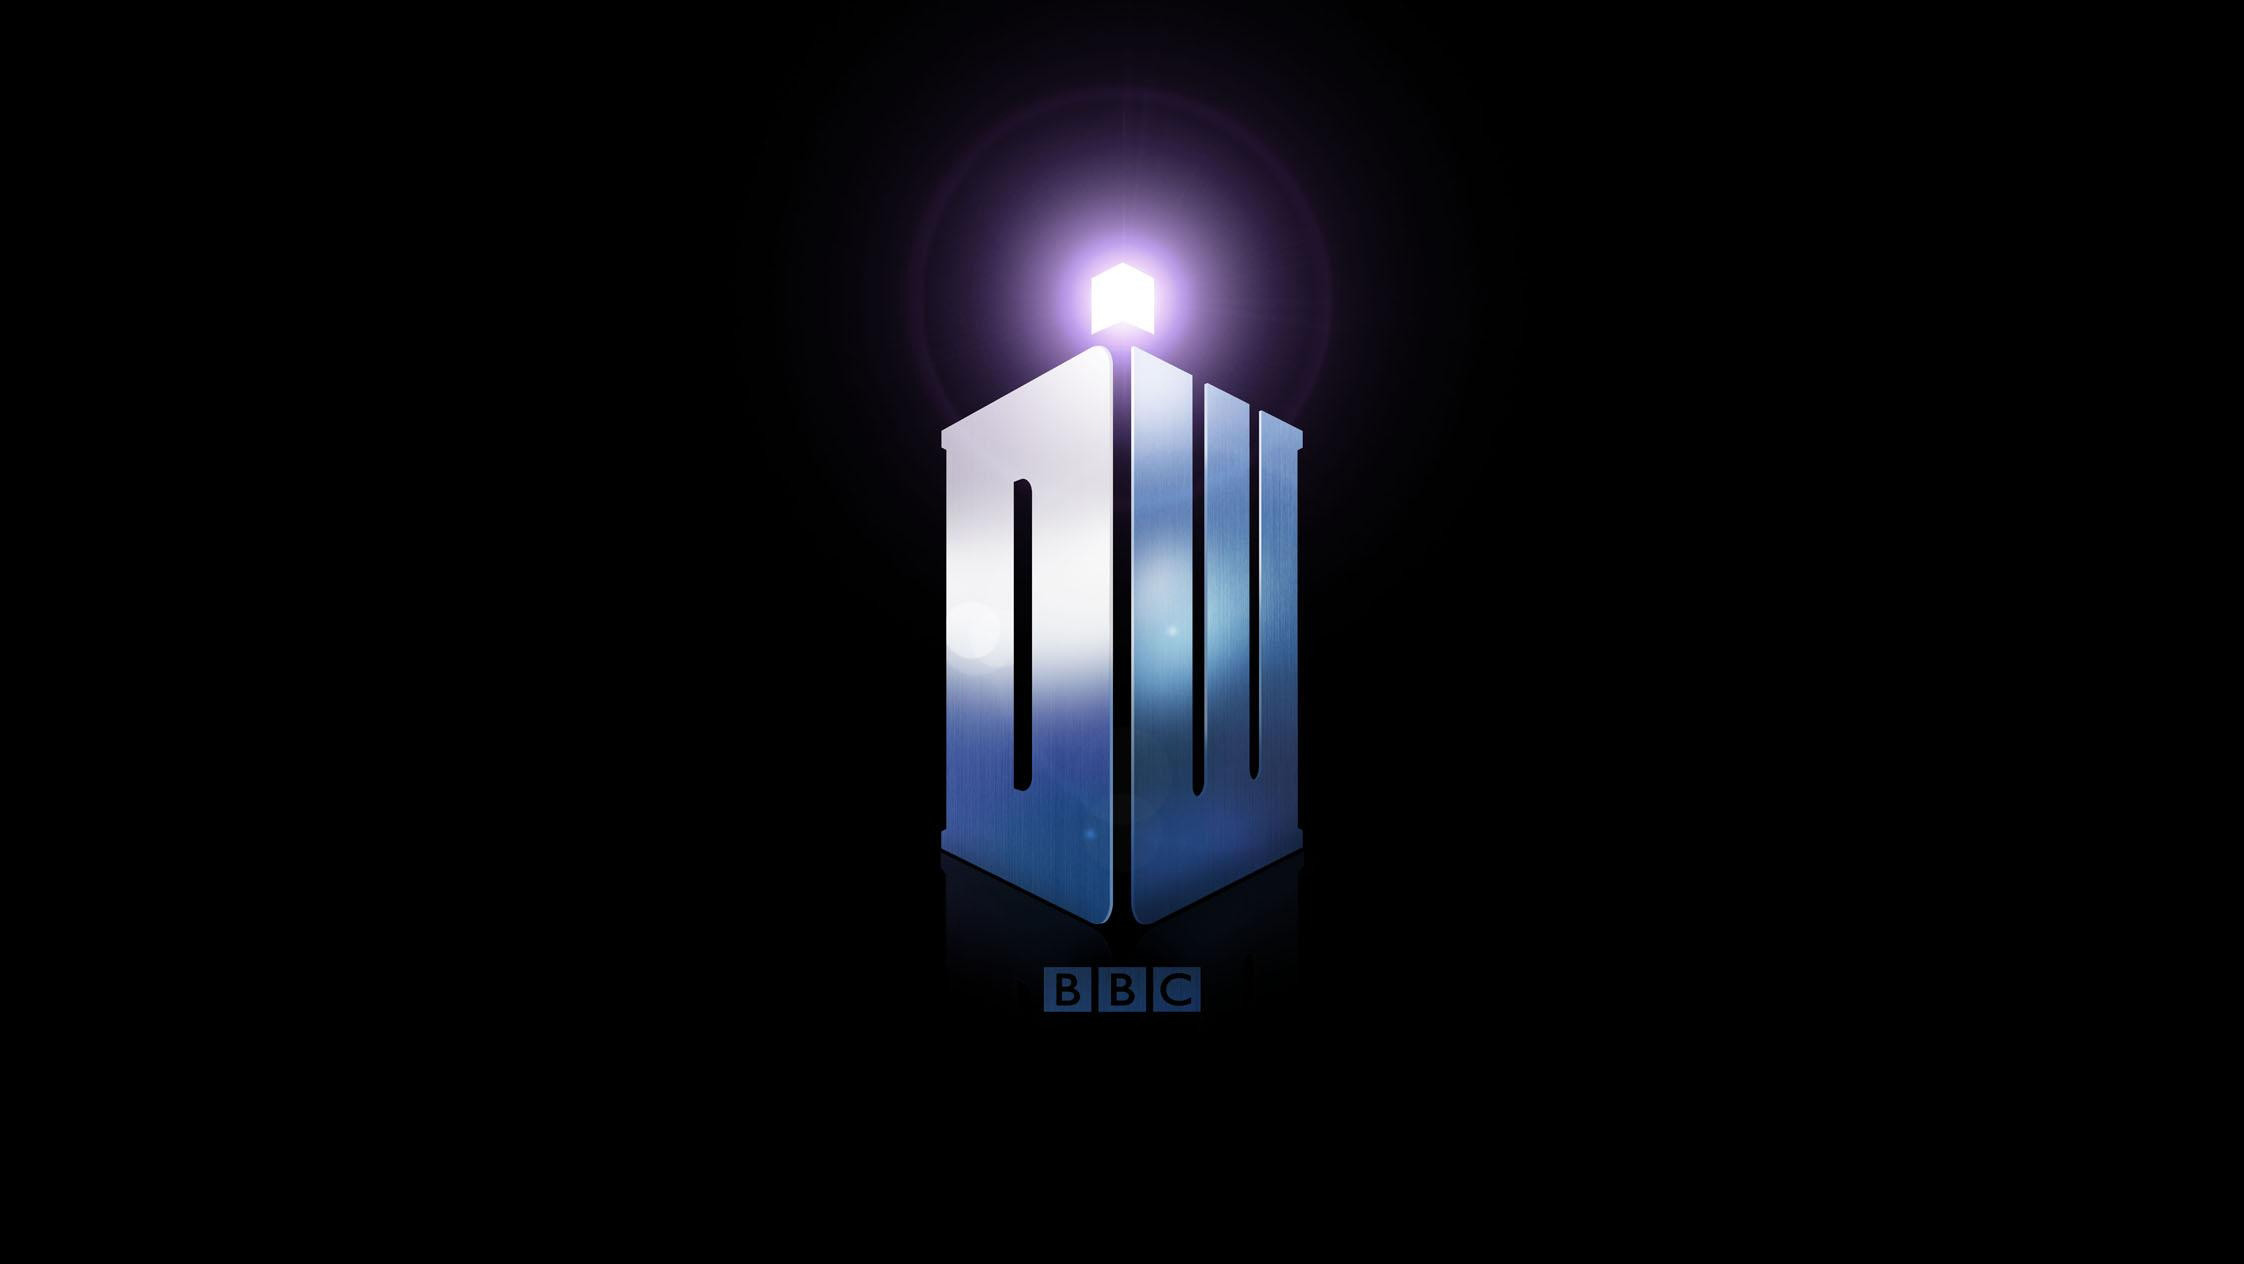 Doctor Who Wallpapers 1